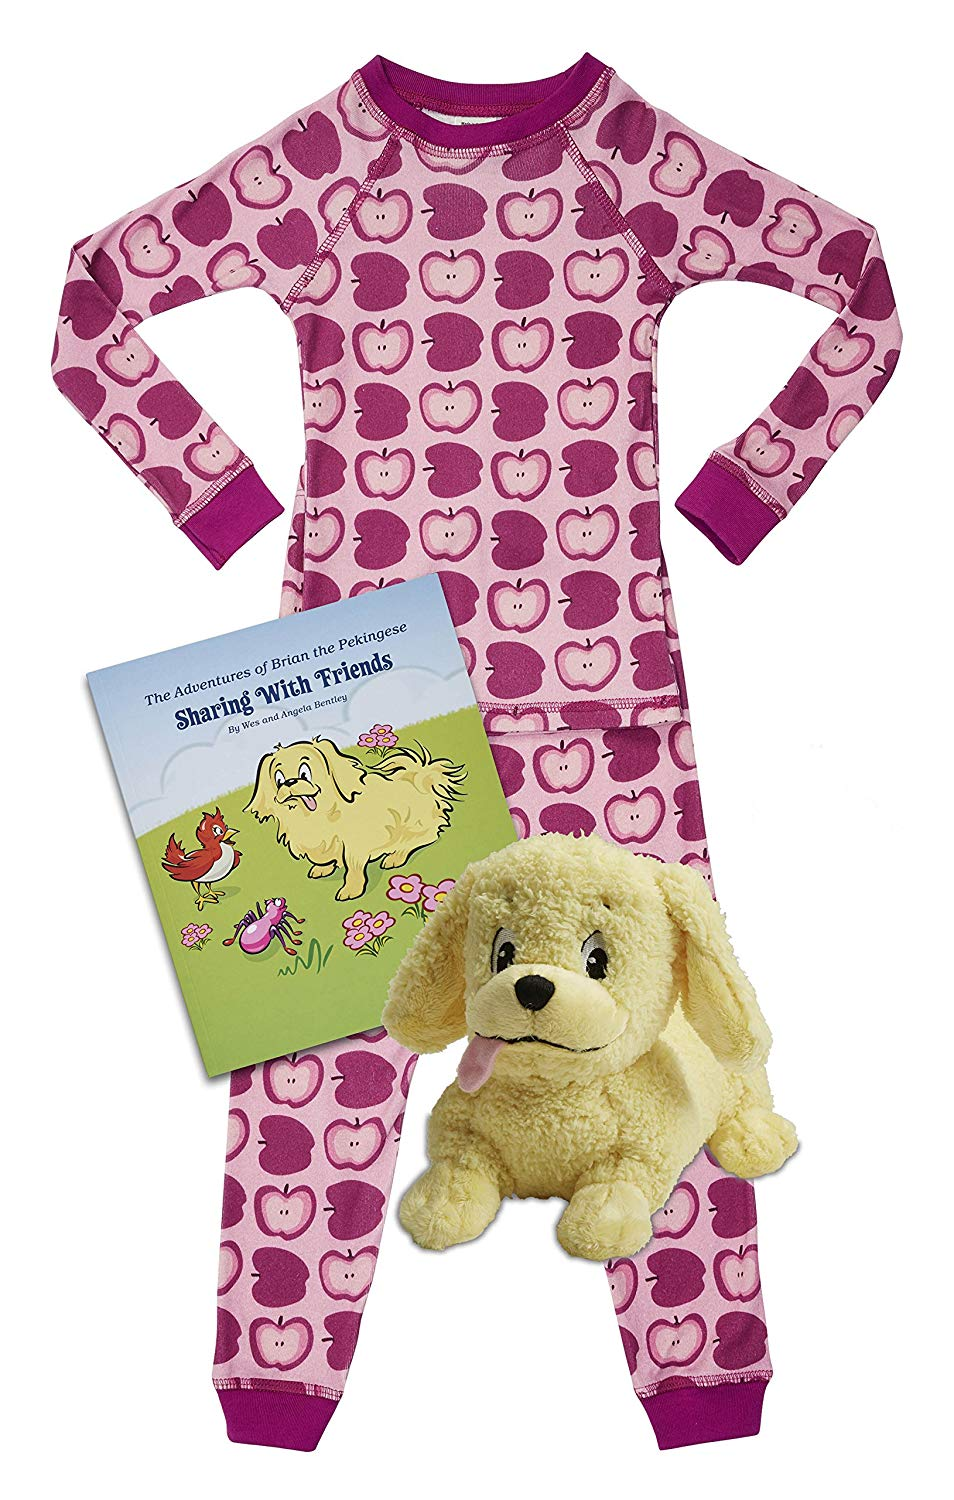 Brian the Pekingese Boys & Girls Organic Cotton Pajamas, Plush Toy & Children's Book Bedtime Gift Set